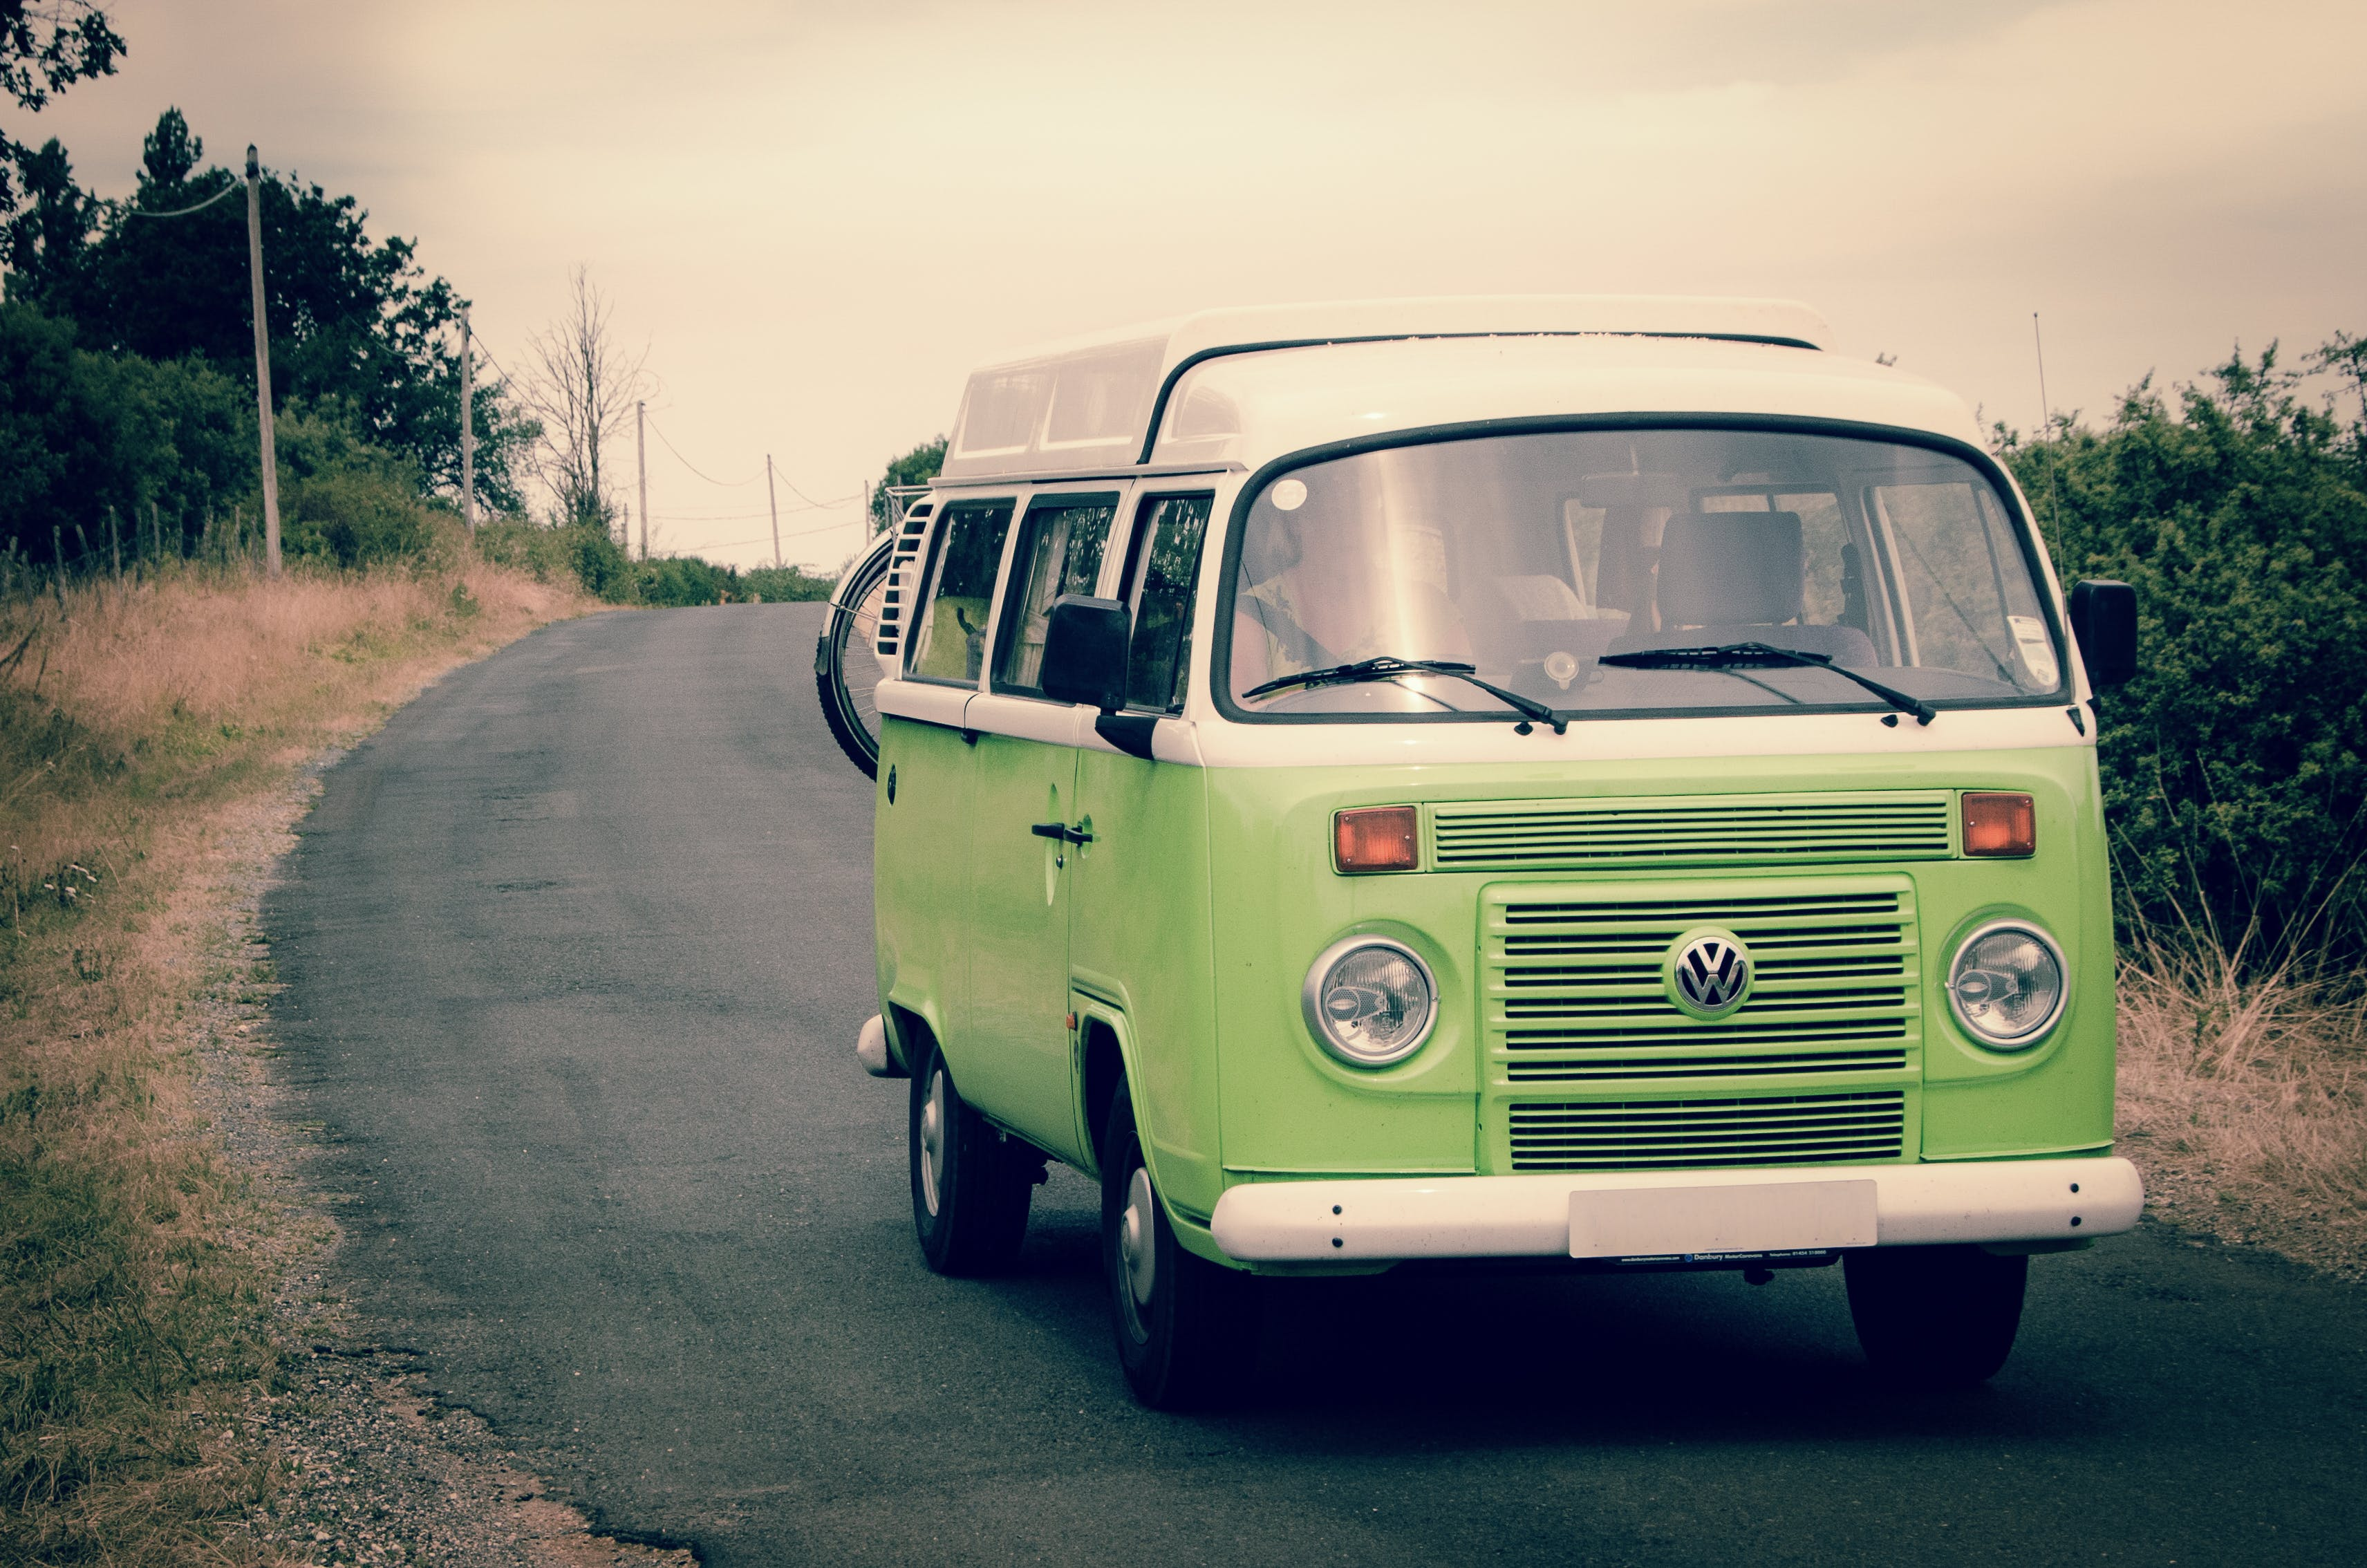 Green and White Volkswagen Combi